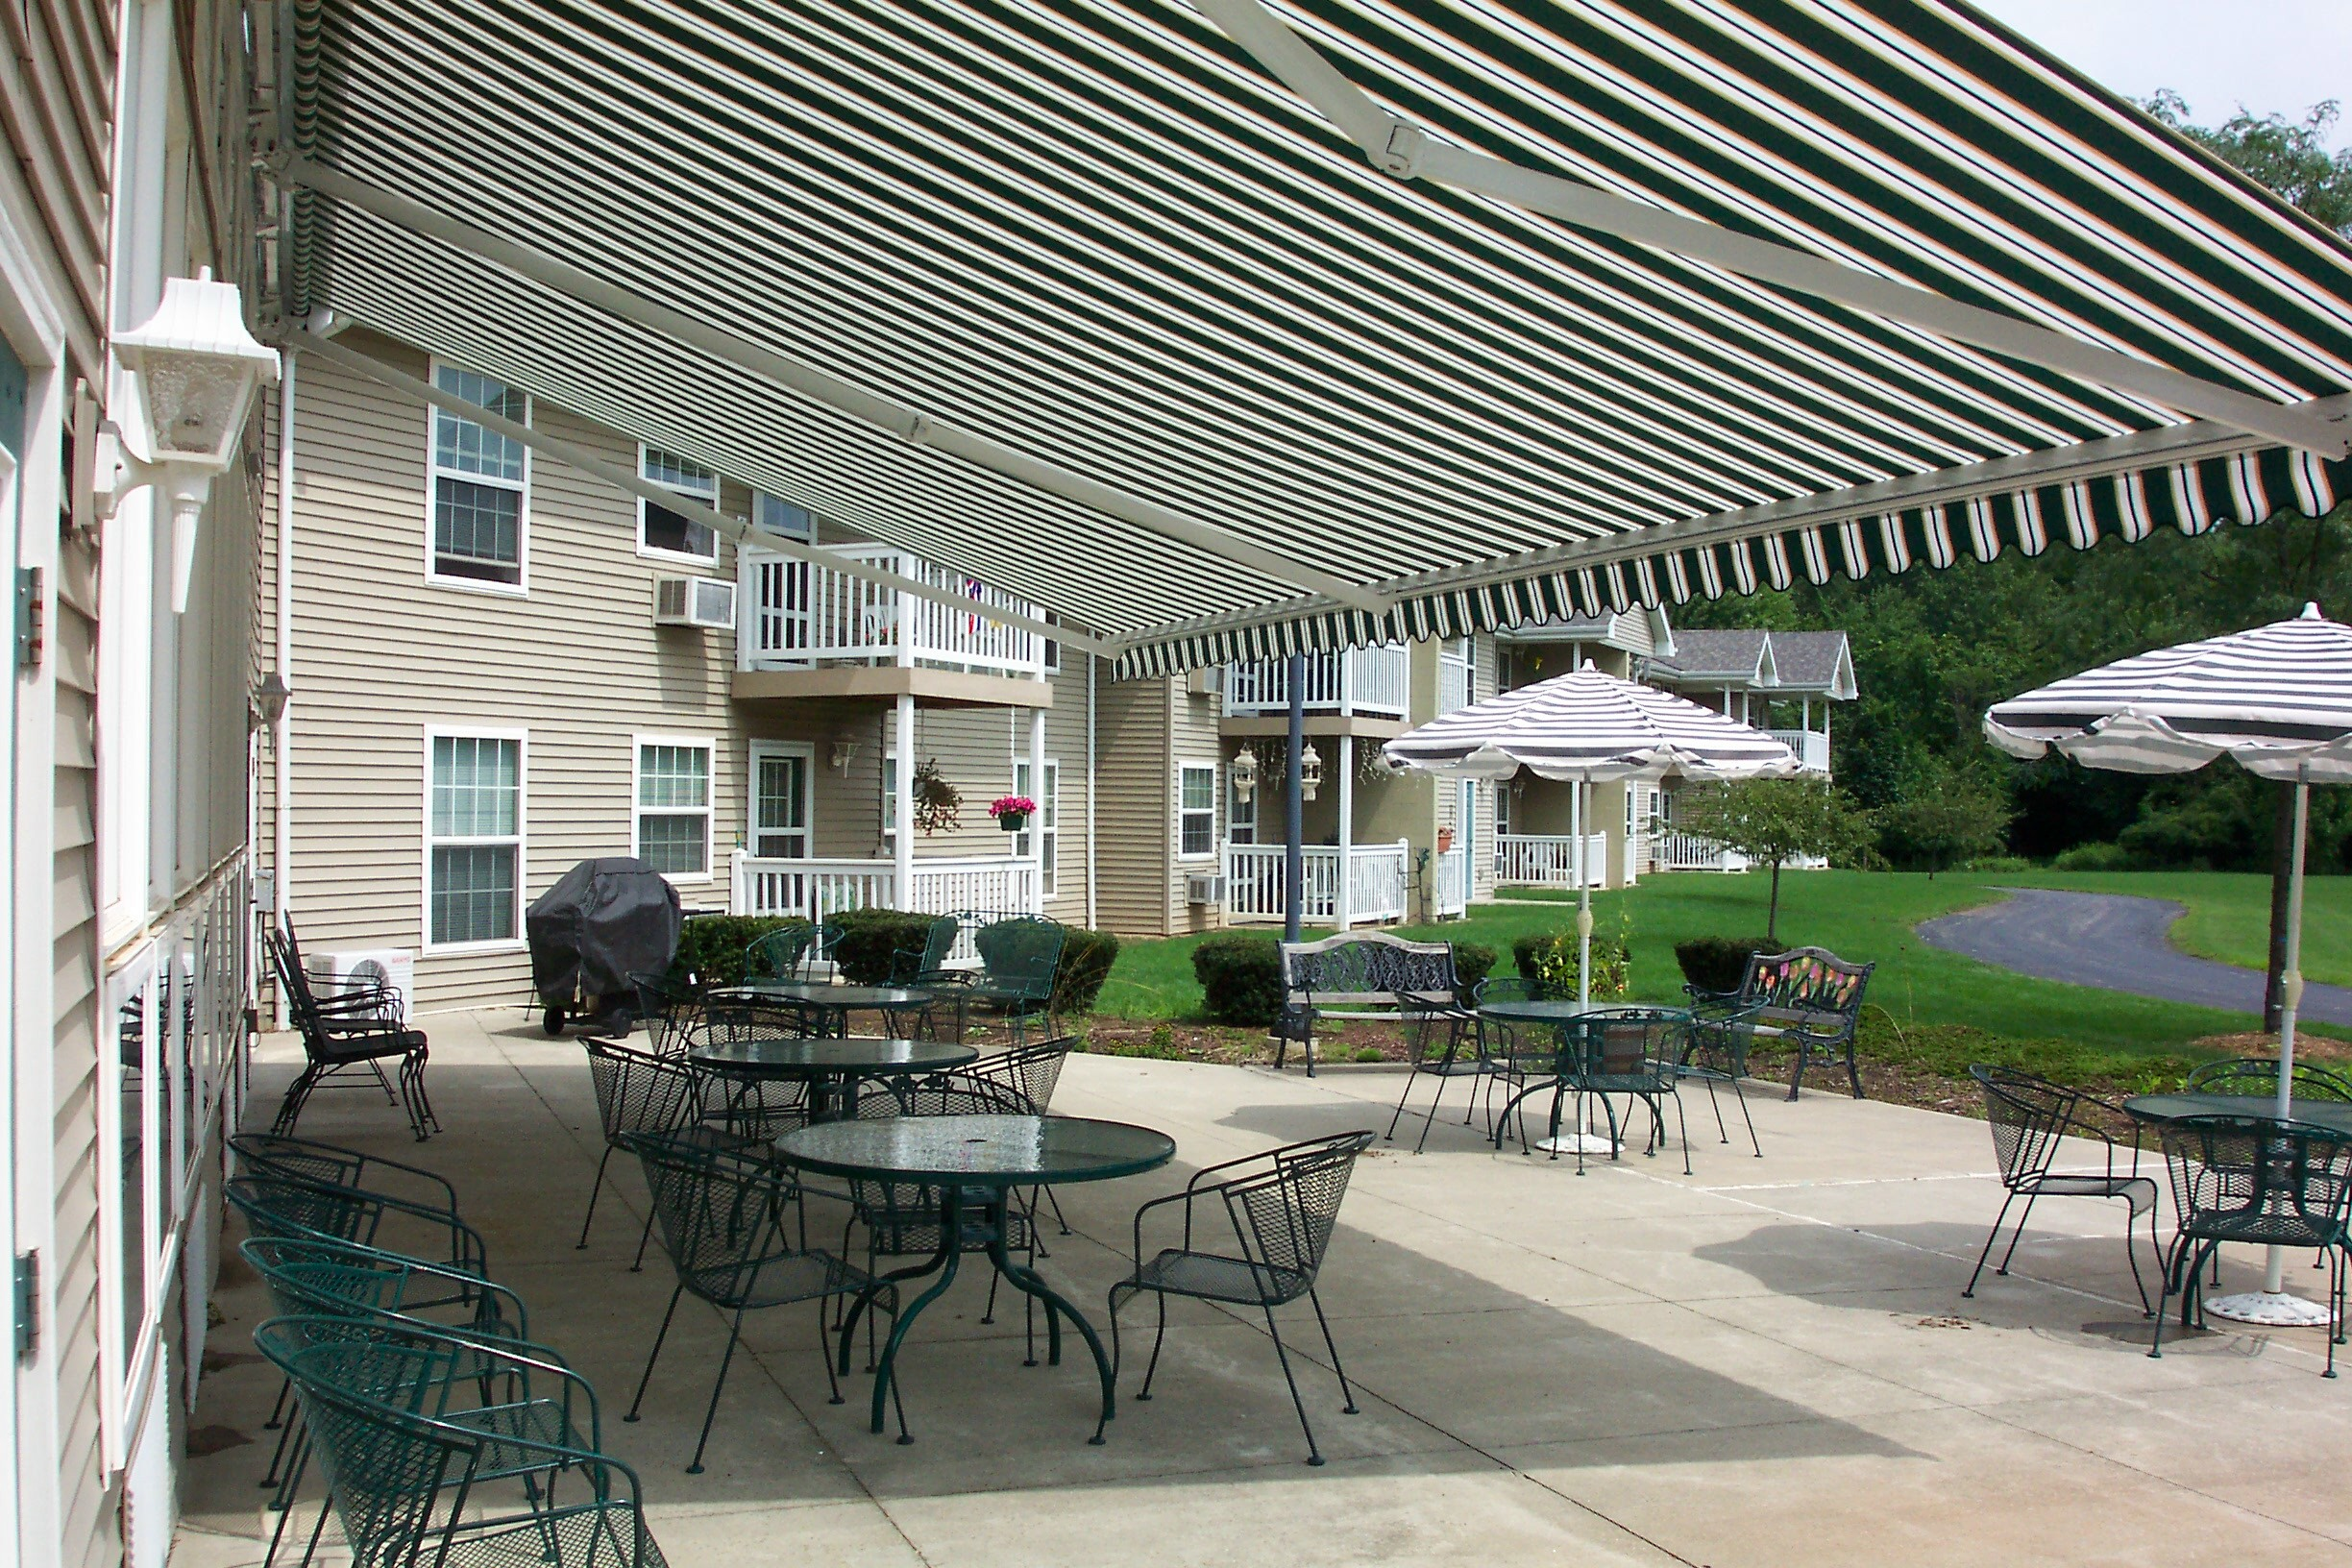 Lowes Awnings Retractable Awning Review